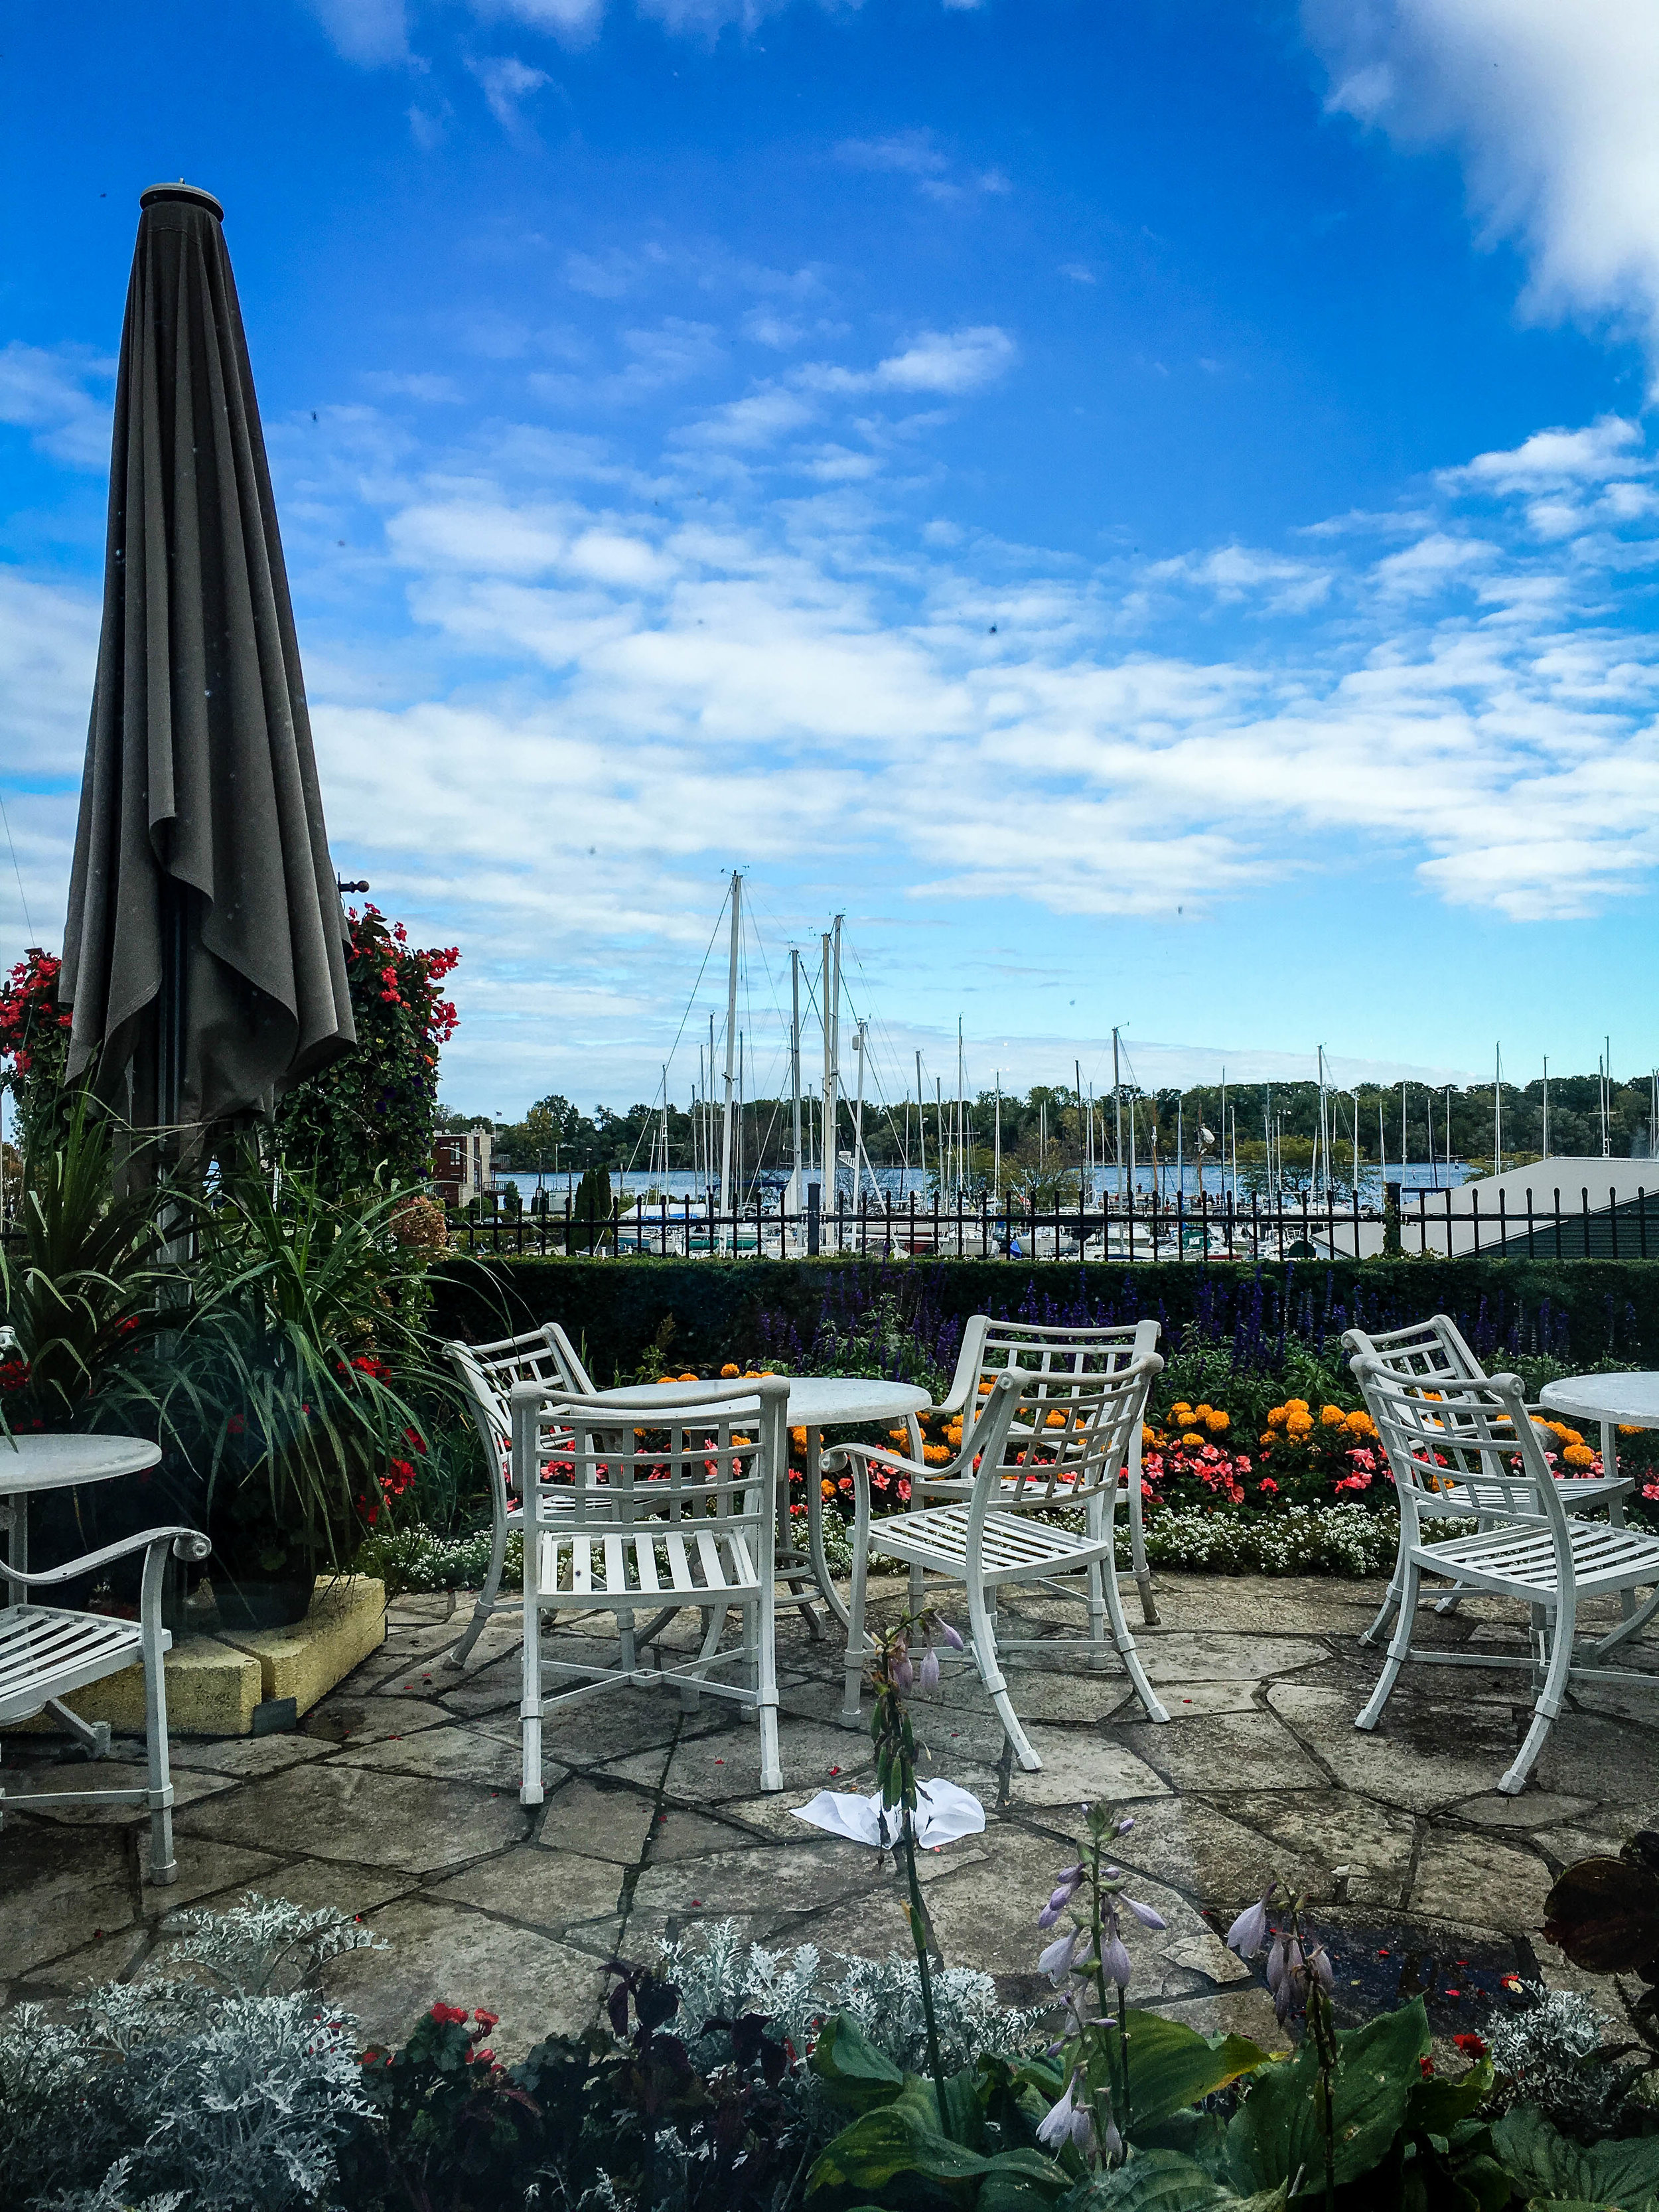 Niagara on the Lake marina view from the Tiara's restaurant terrace